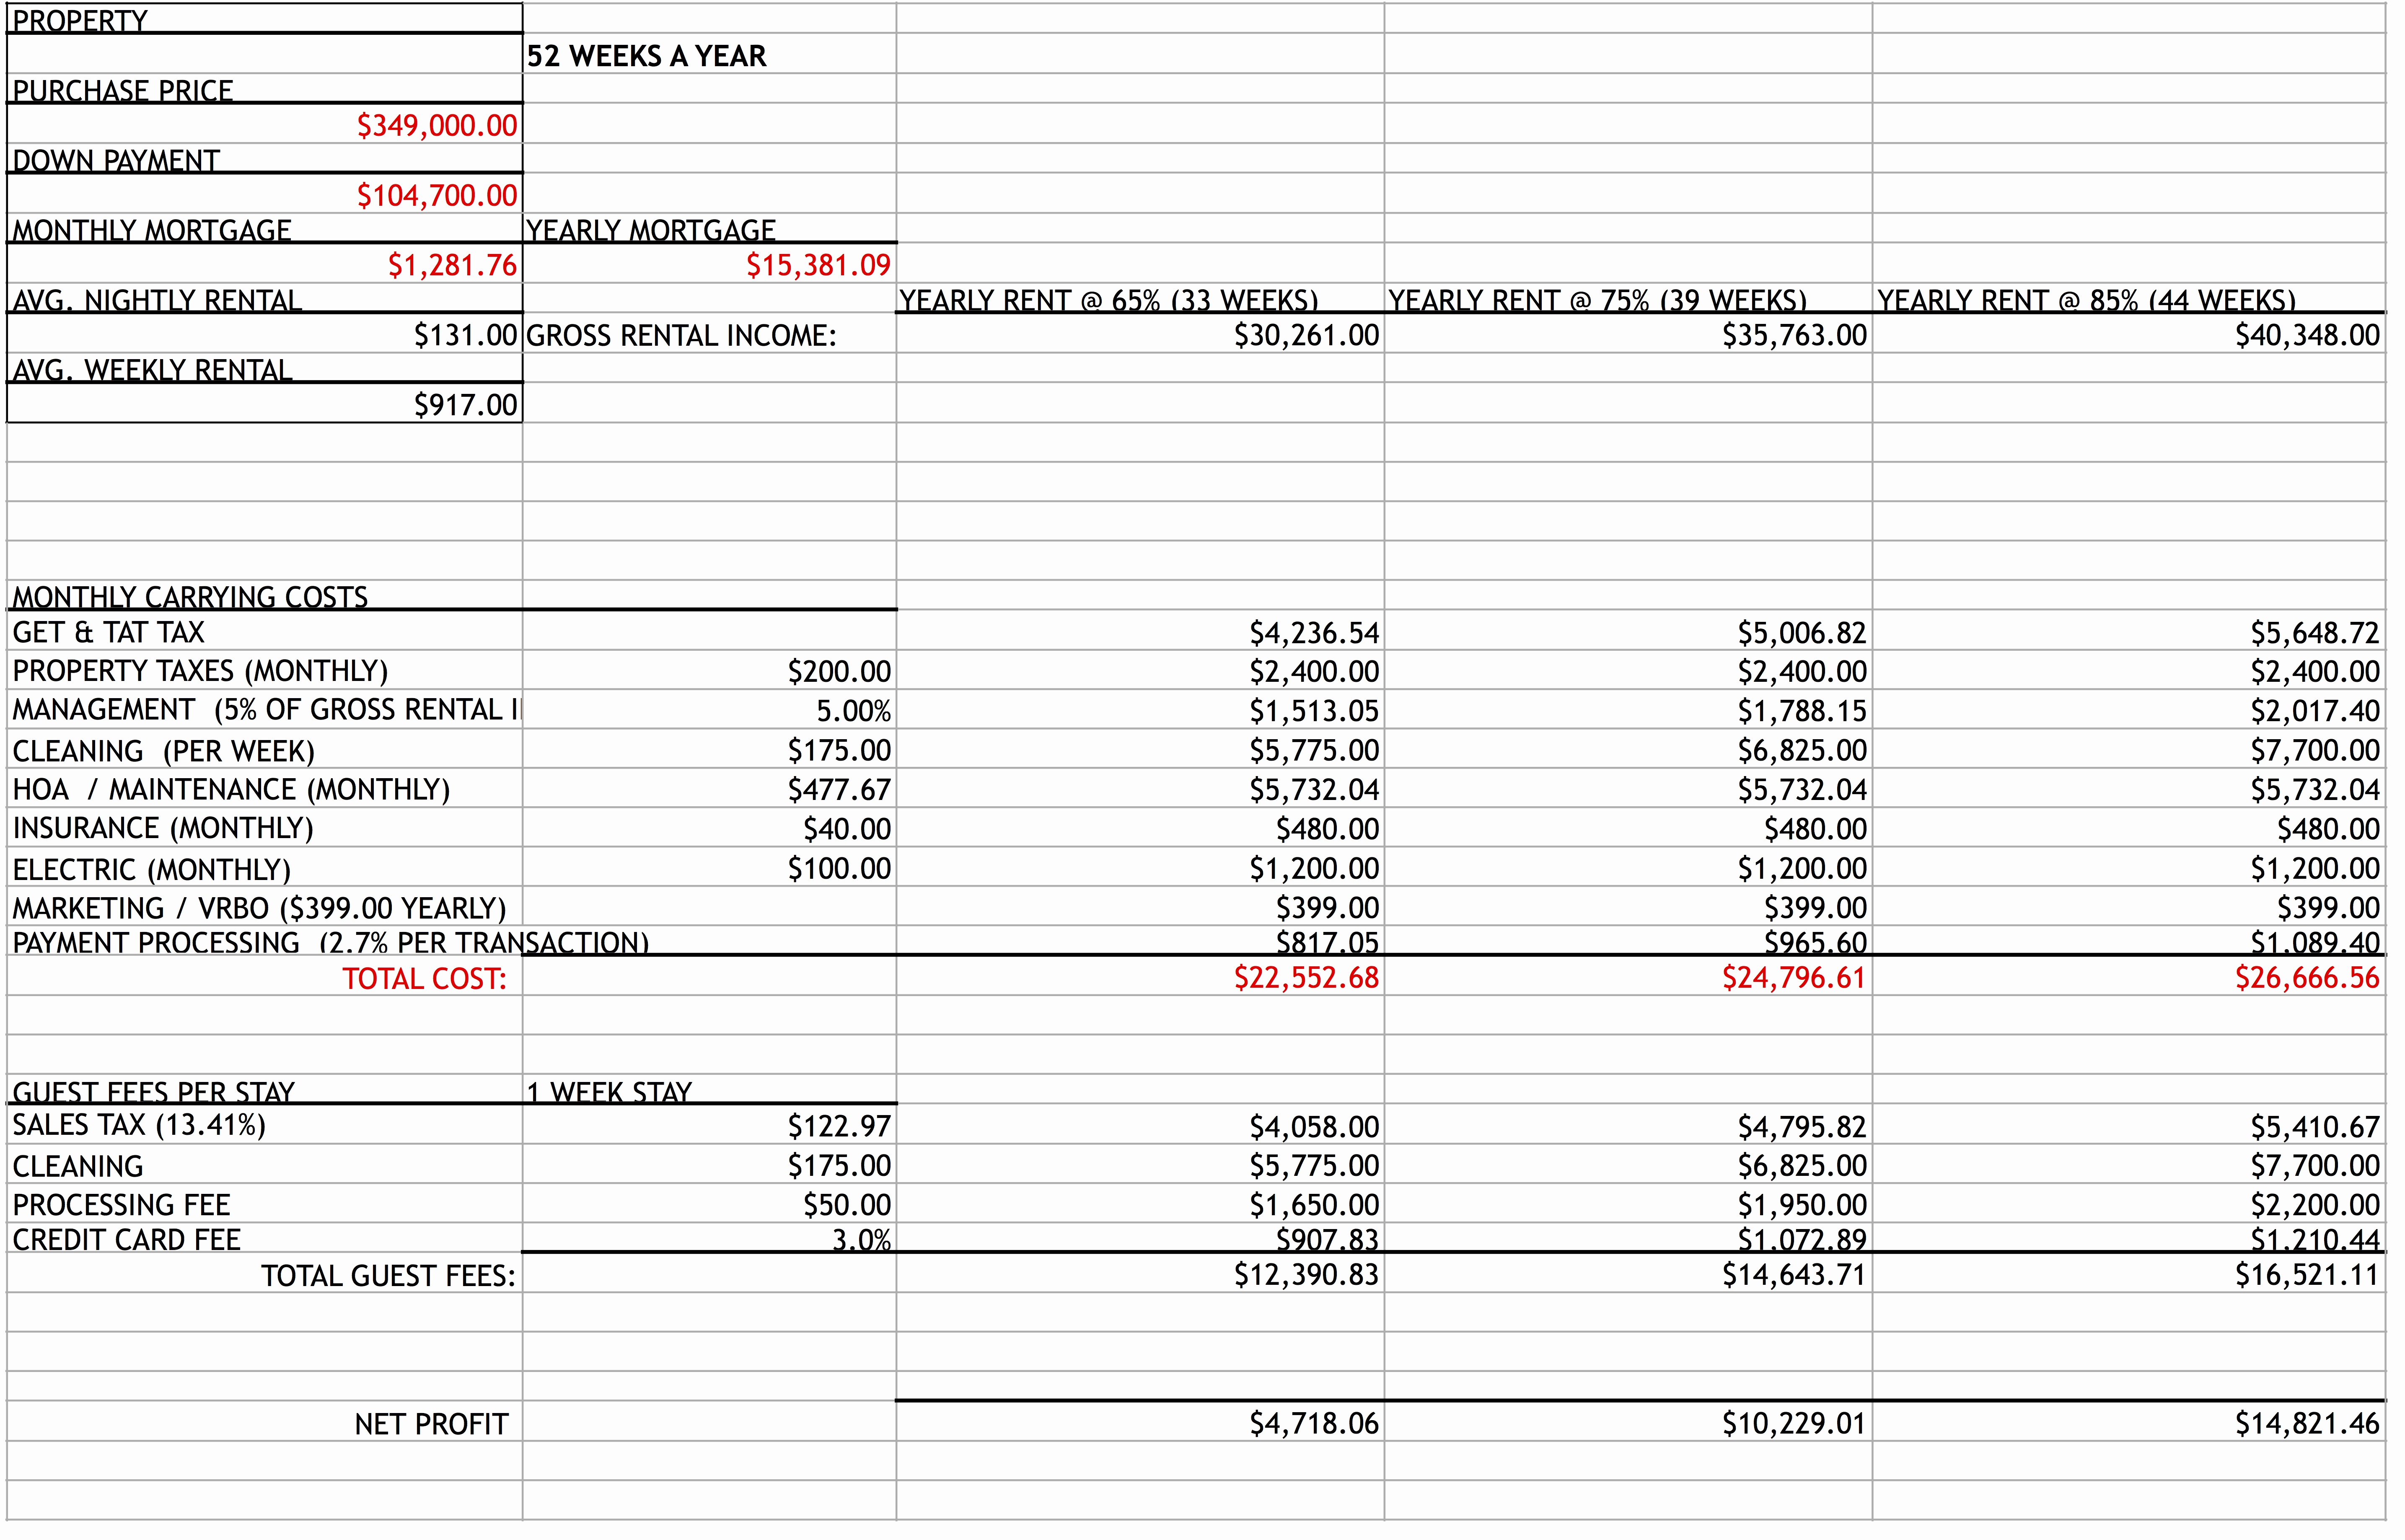 Wedding Budget Spreadsheet The Knot With Regard To Wedding Expense Spreadsheet Budget The Knot Google Nz Template